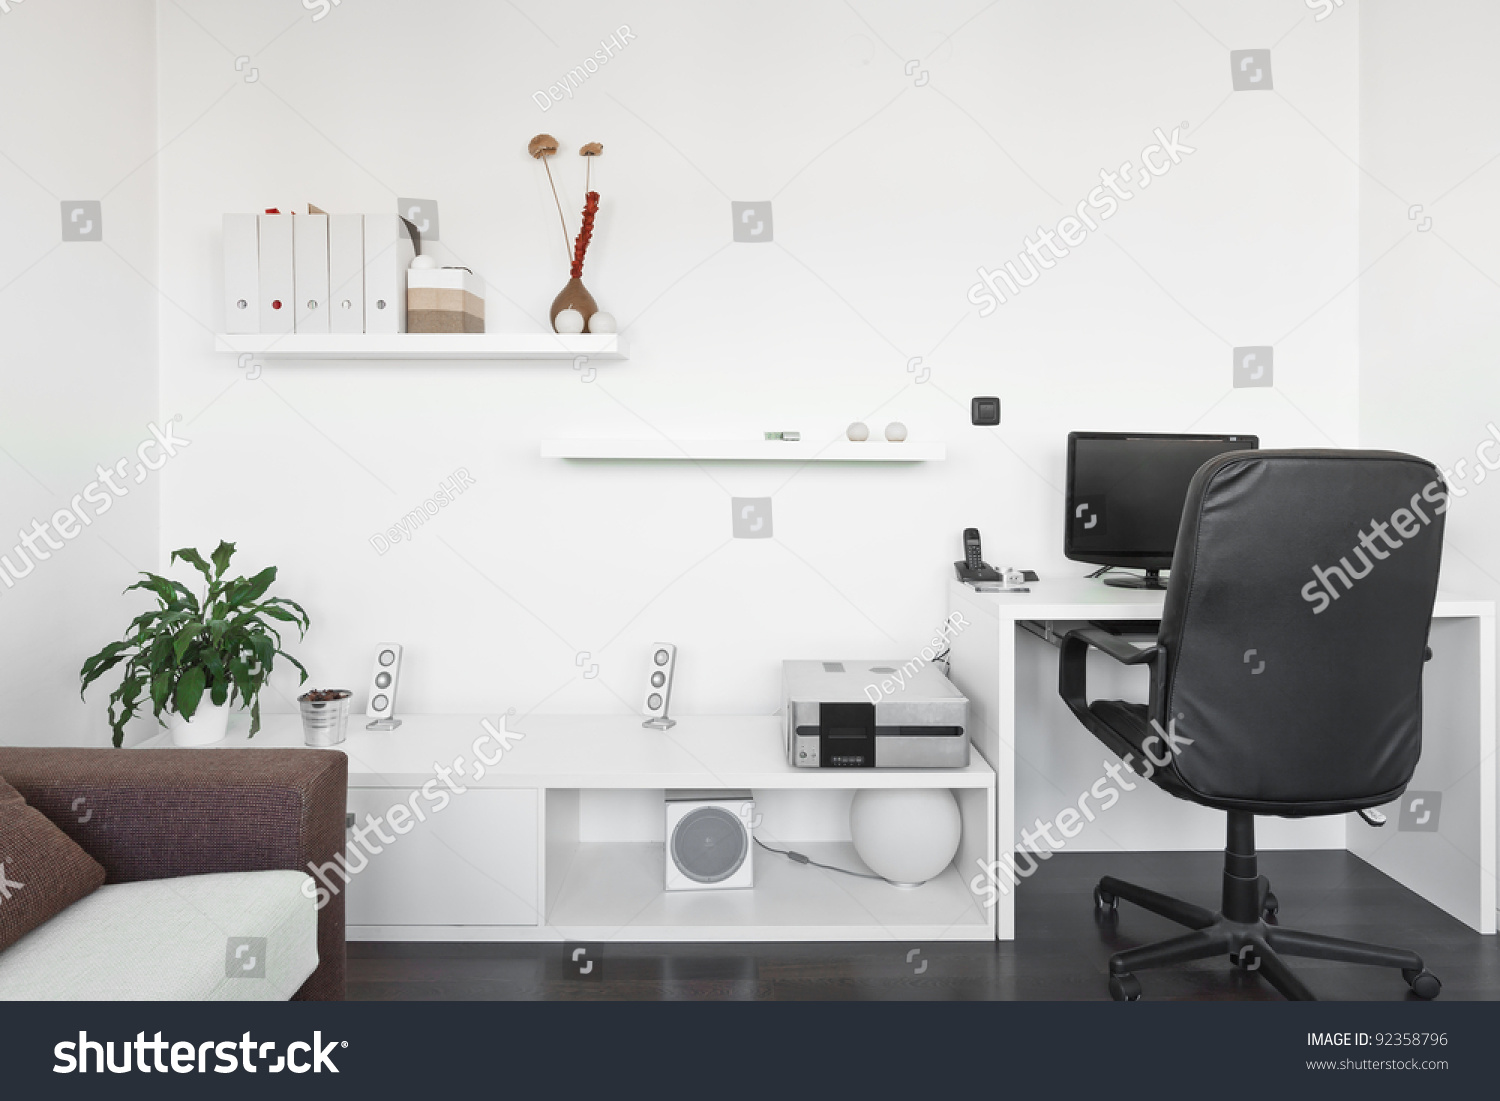 Modern living room with computer desk and the screen sofa for Desk in living room ideas